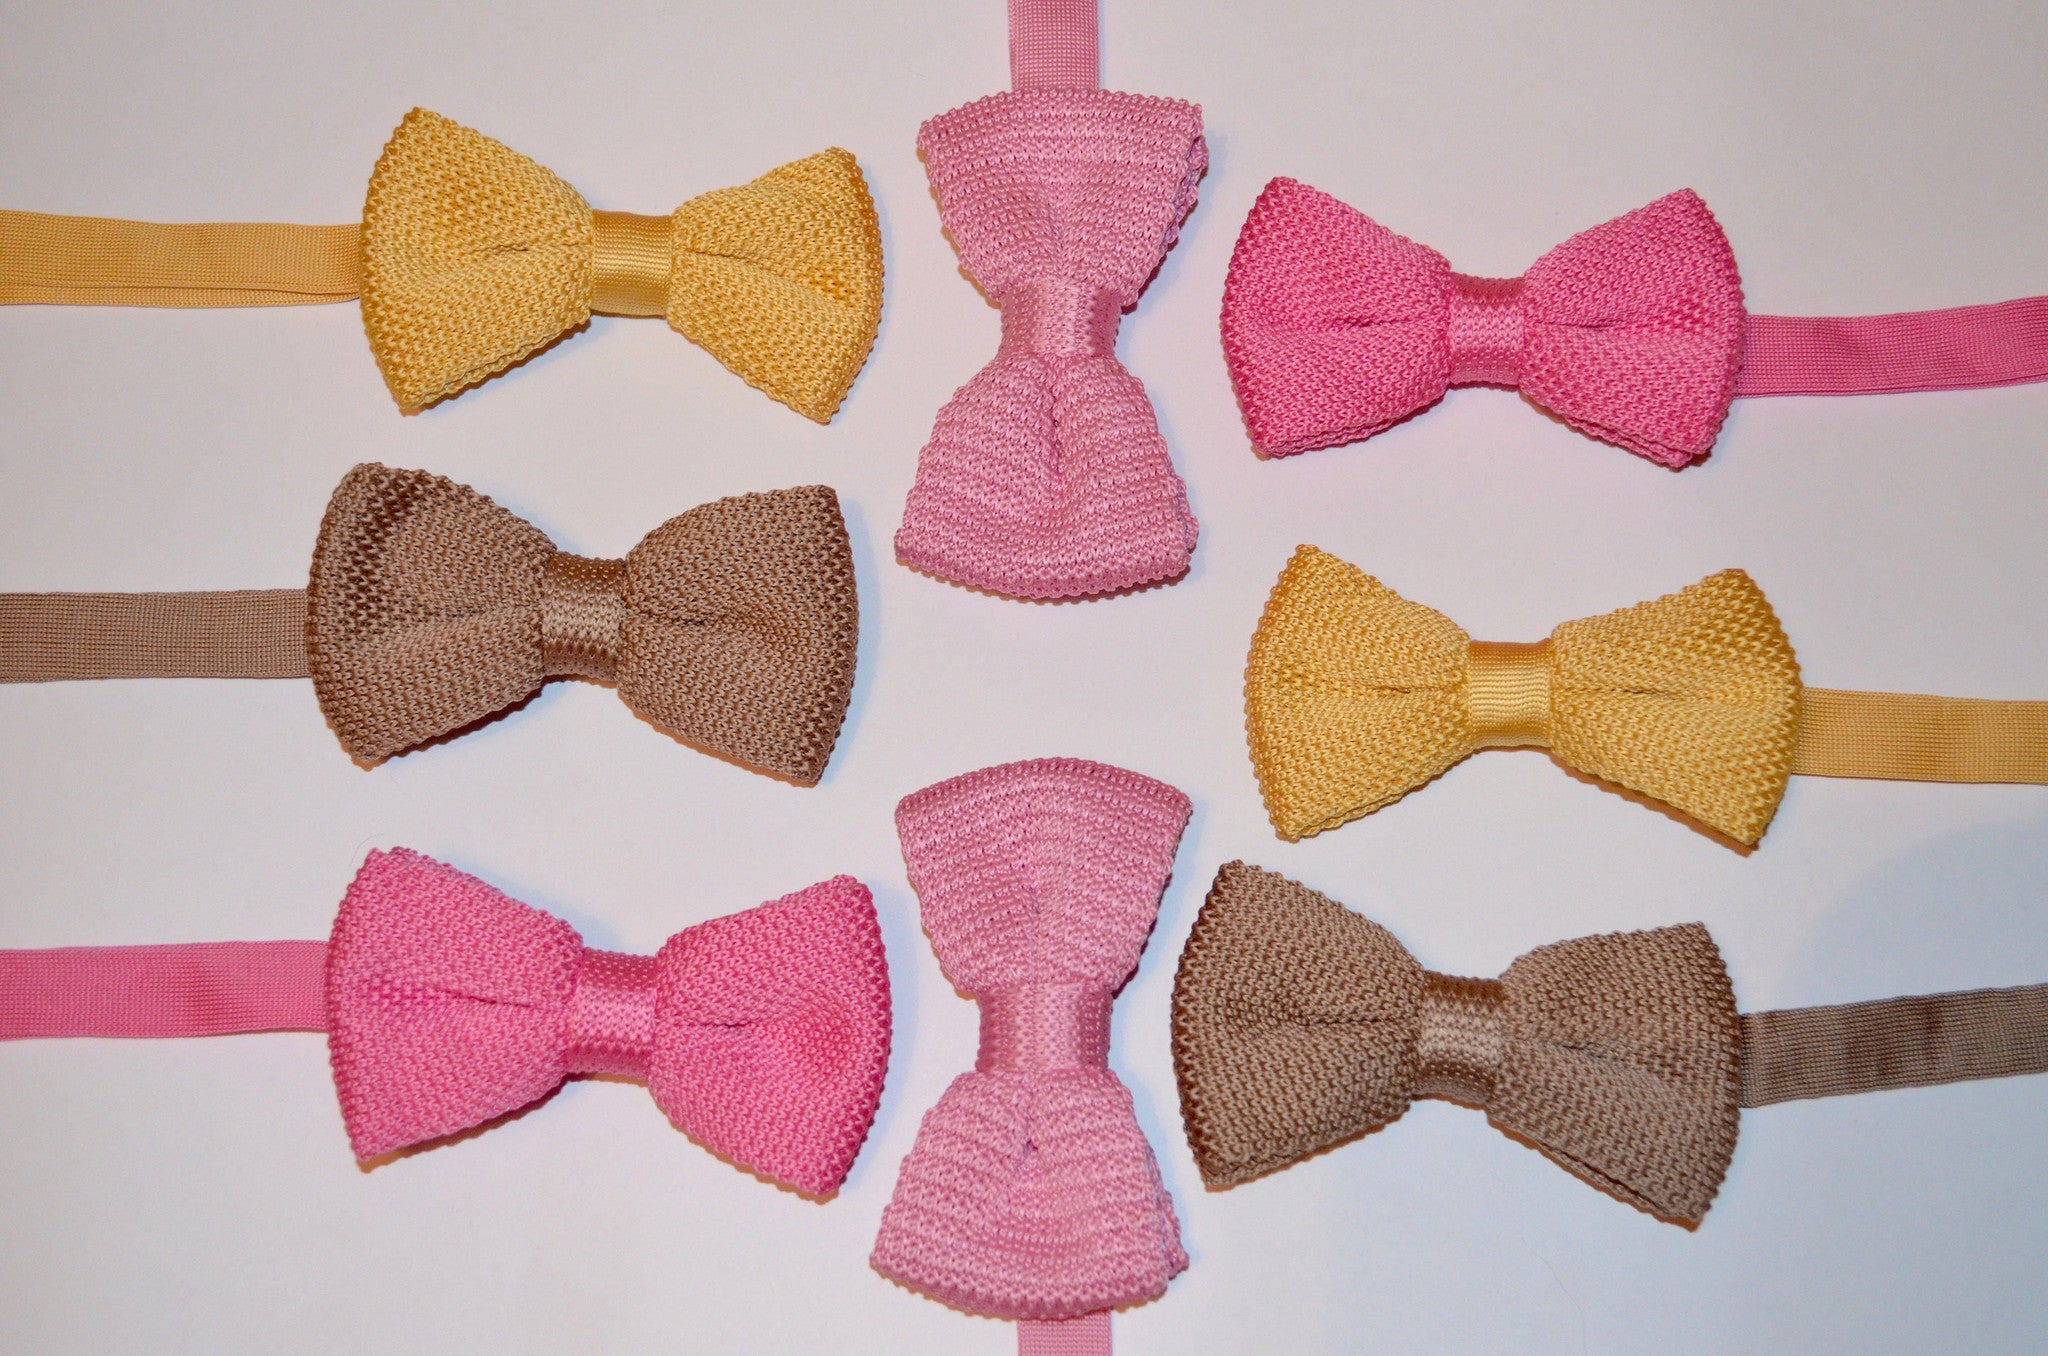 Wedding Bow Tie Inspiration